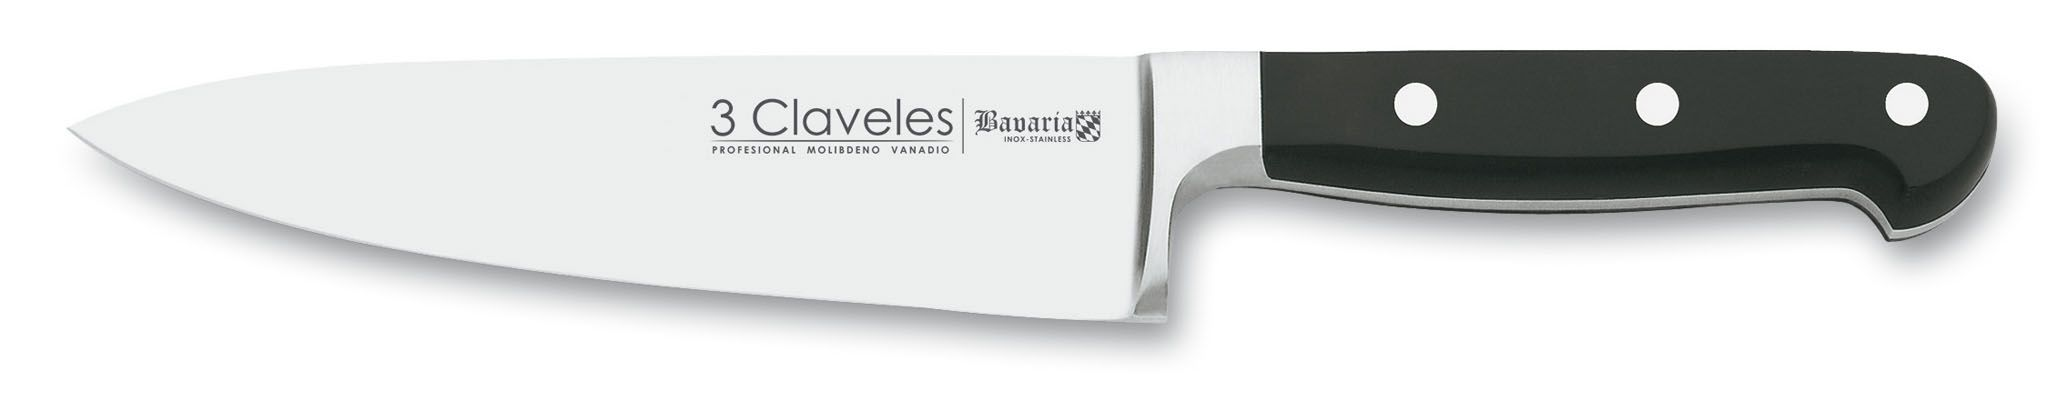 "BAVARIA PROFESSIONAL CHEF KNIFE 15 cm - 6"" E 3C"